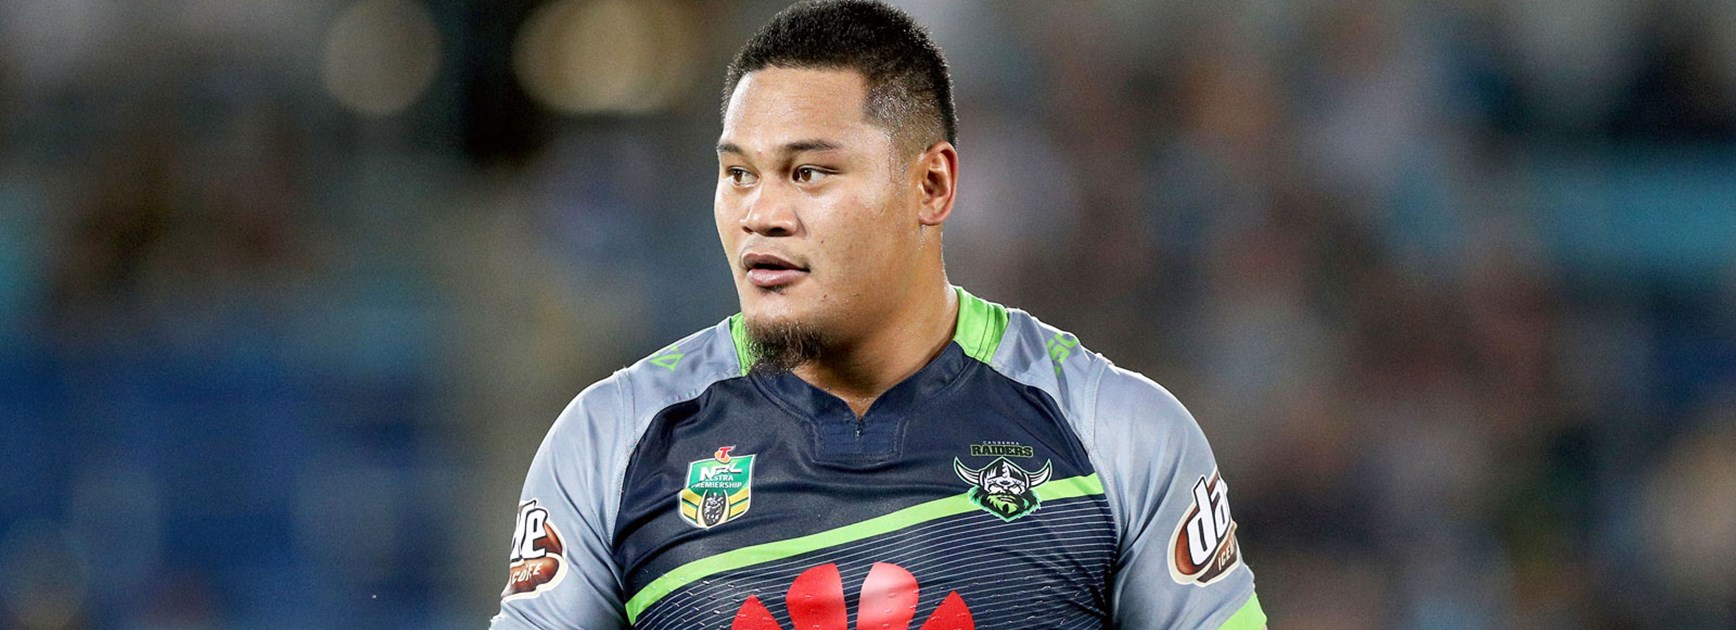 Raiders centre Joey Leilua is pushing for NSW selection in 2017.